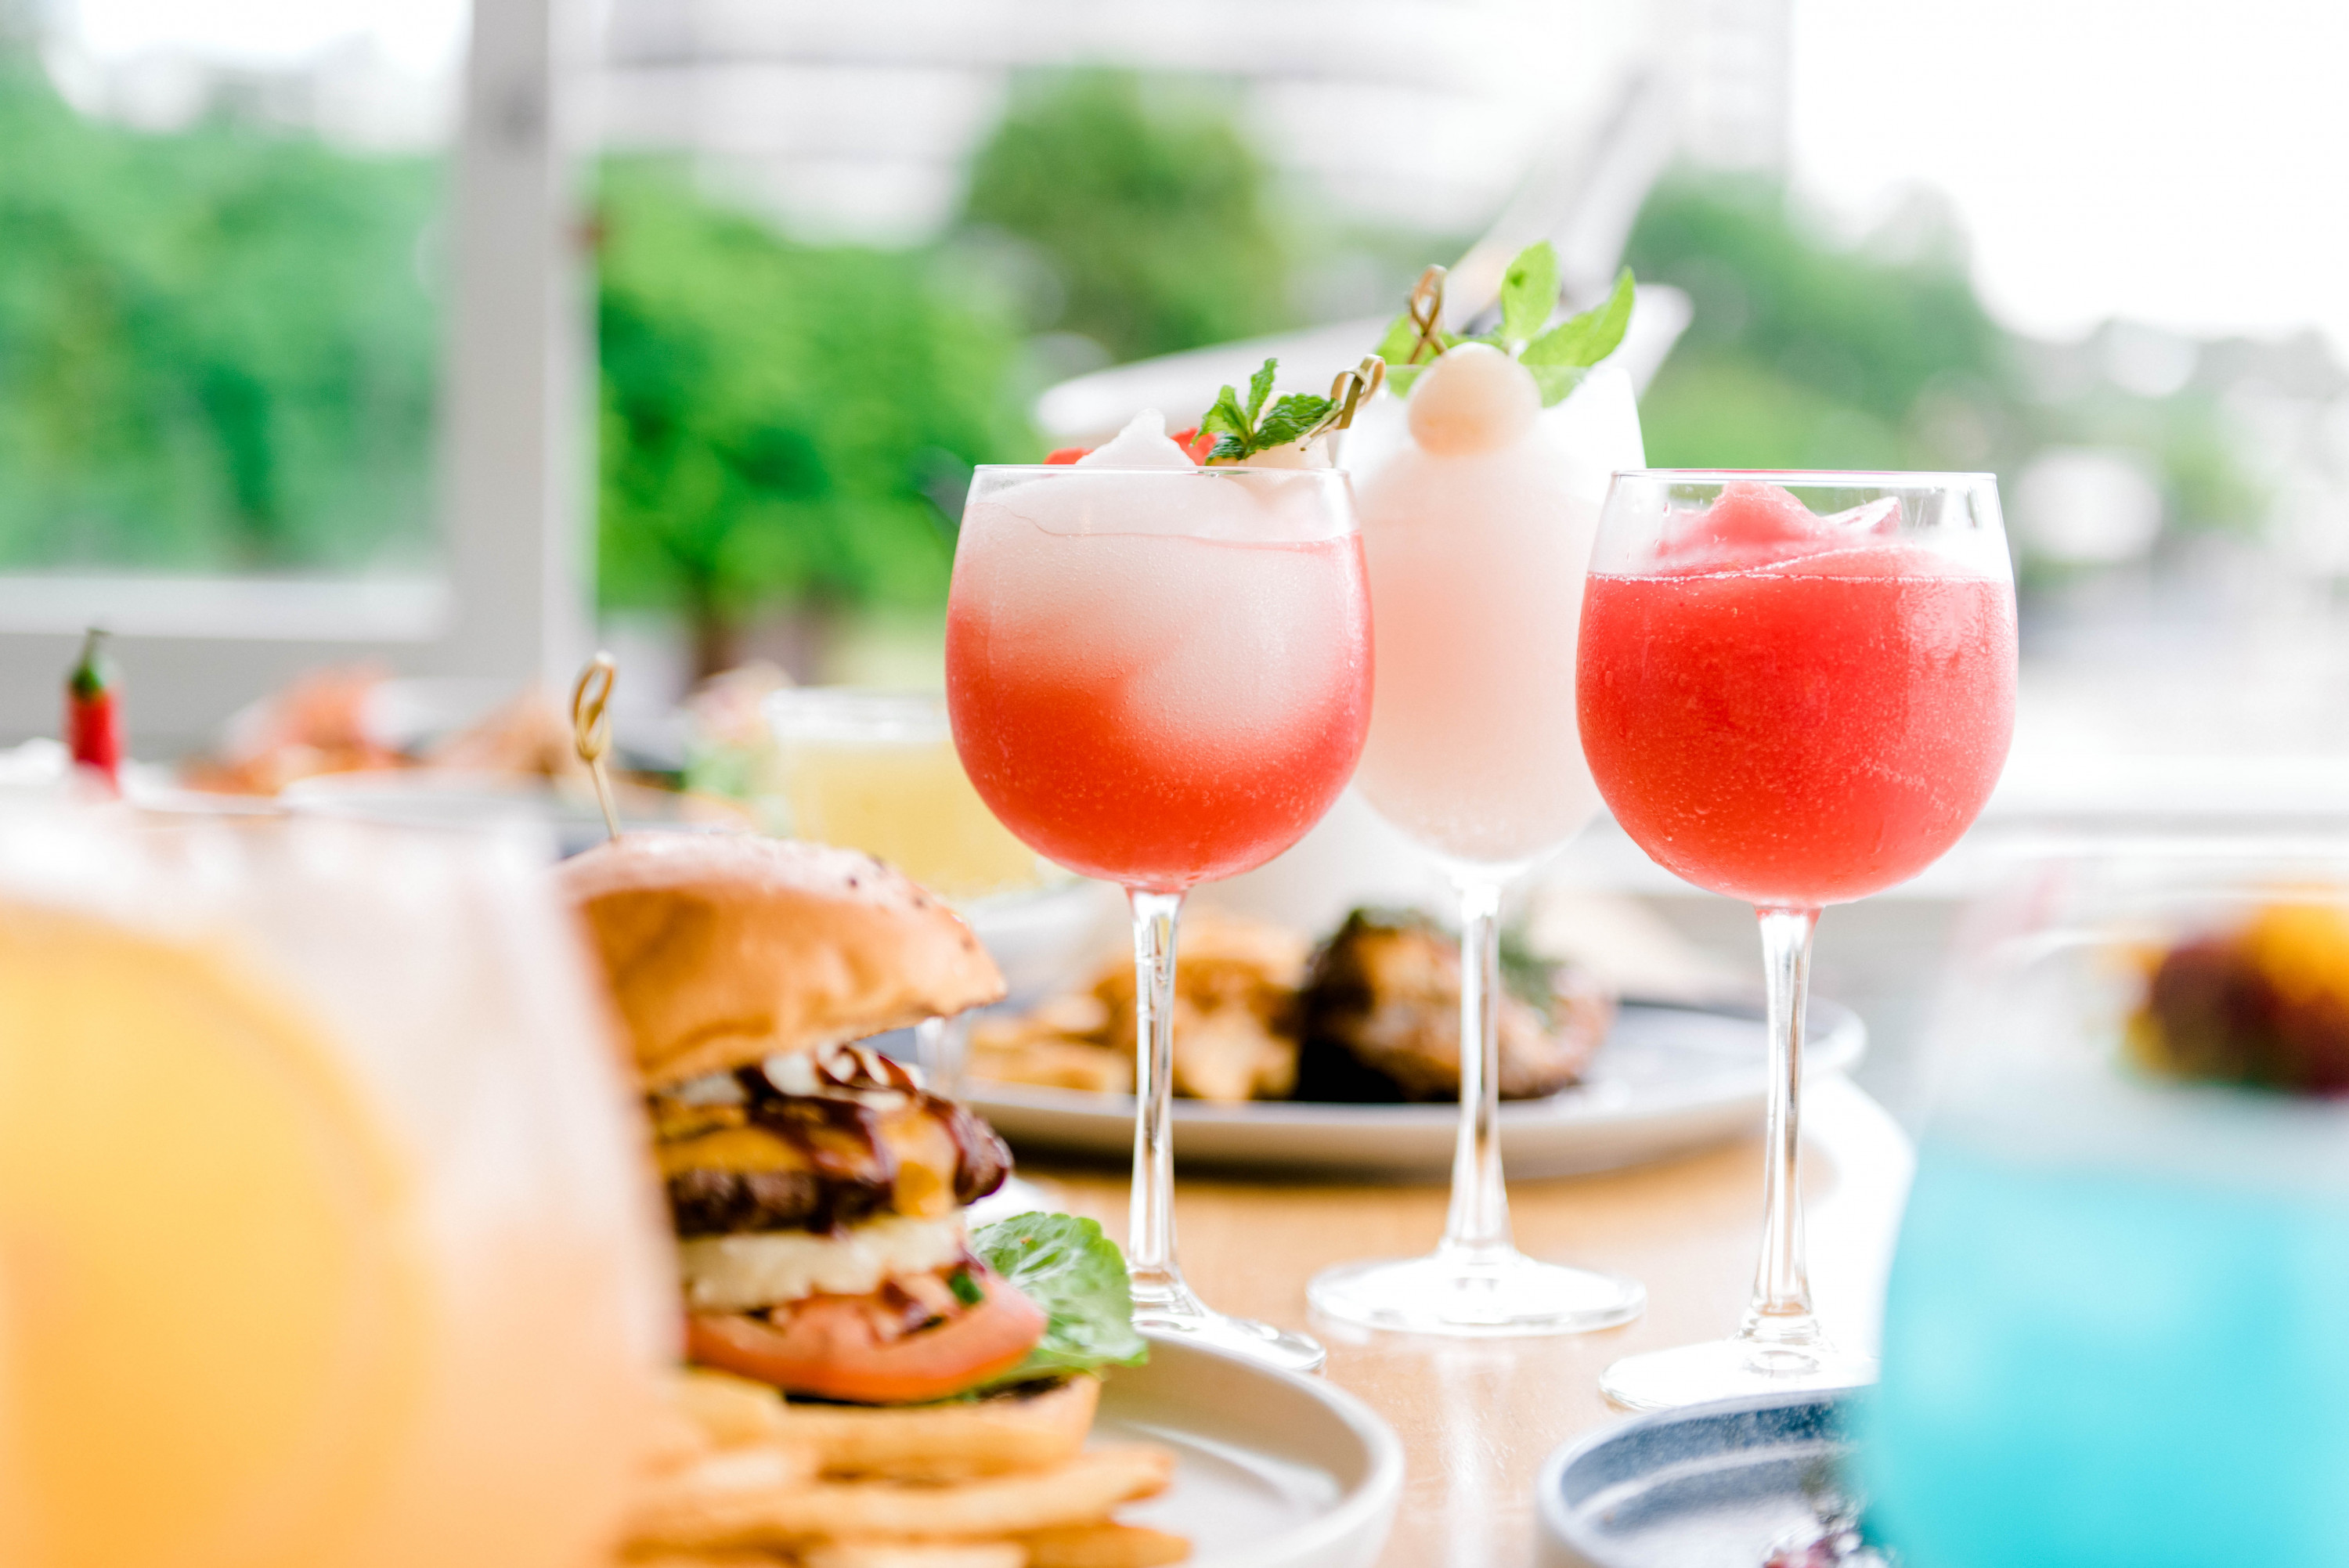 cocktails and food on a table